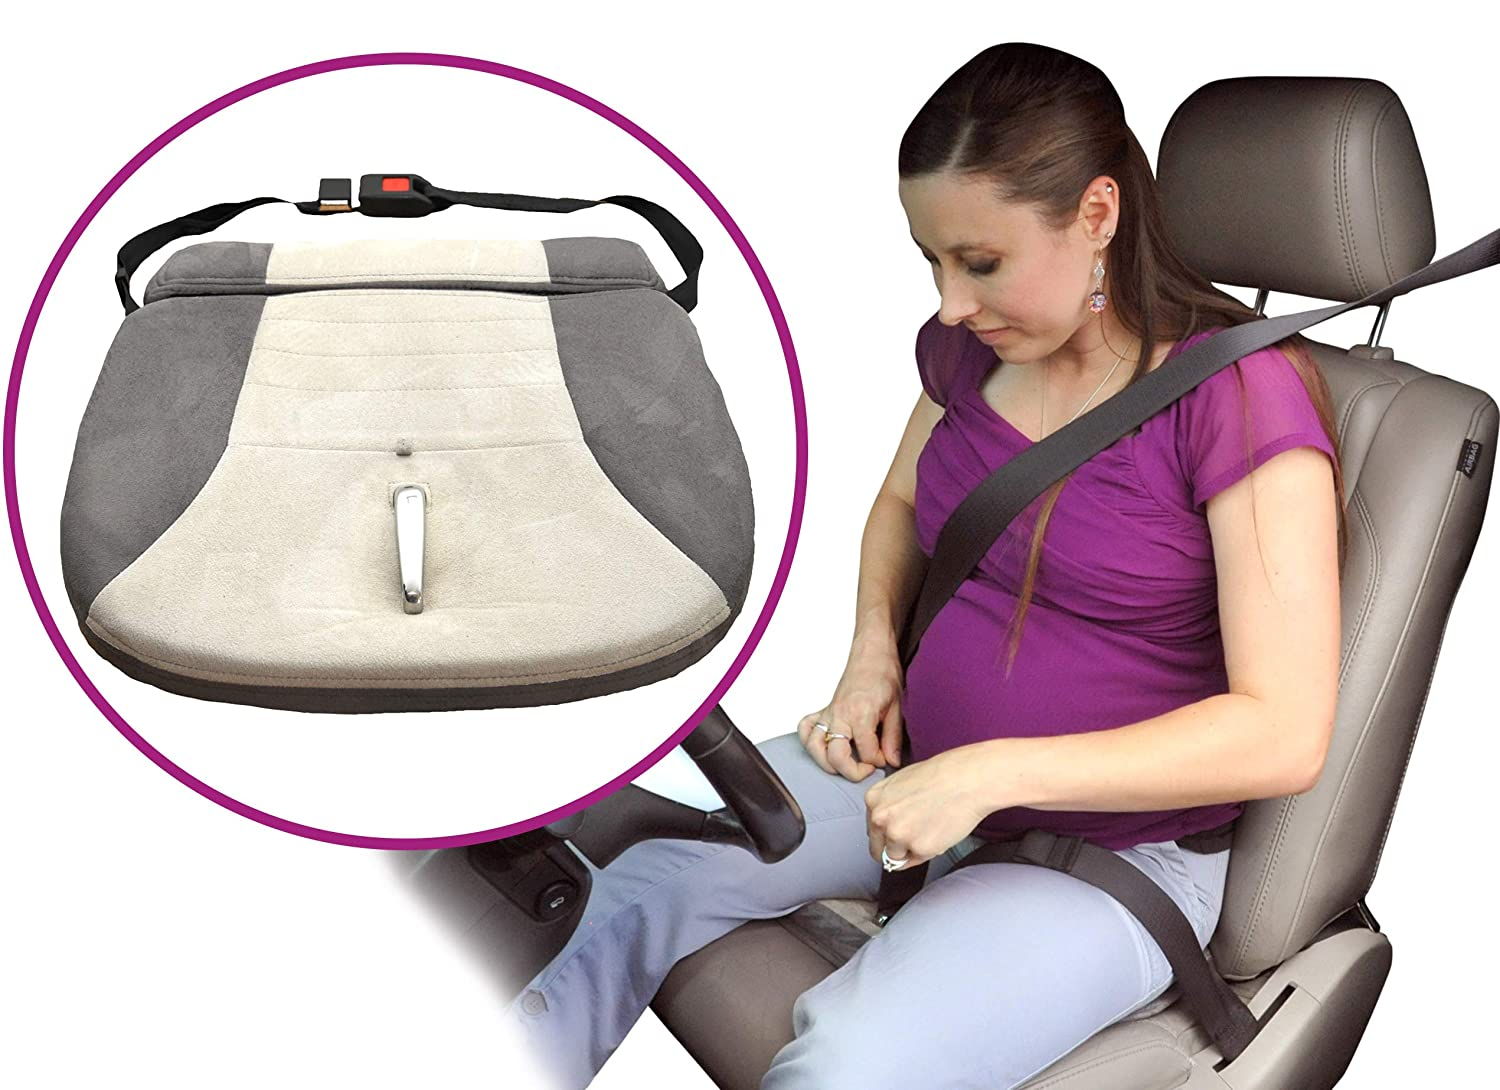 Adjustable Car Seat Strap for Tummy Bump Safety and Comfort Quick Adjust Clip for Optimal Leg Coverage Full Term Pregnancy Use White Toddler Essentials Mommy/'s Belt